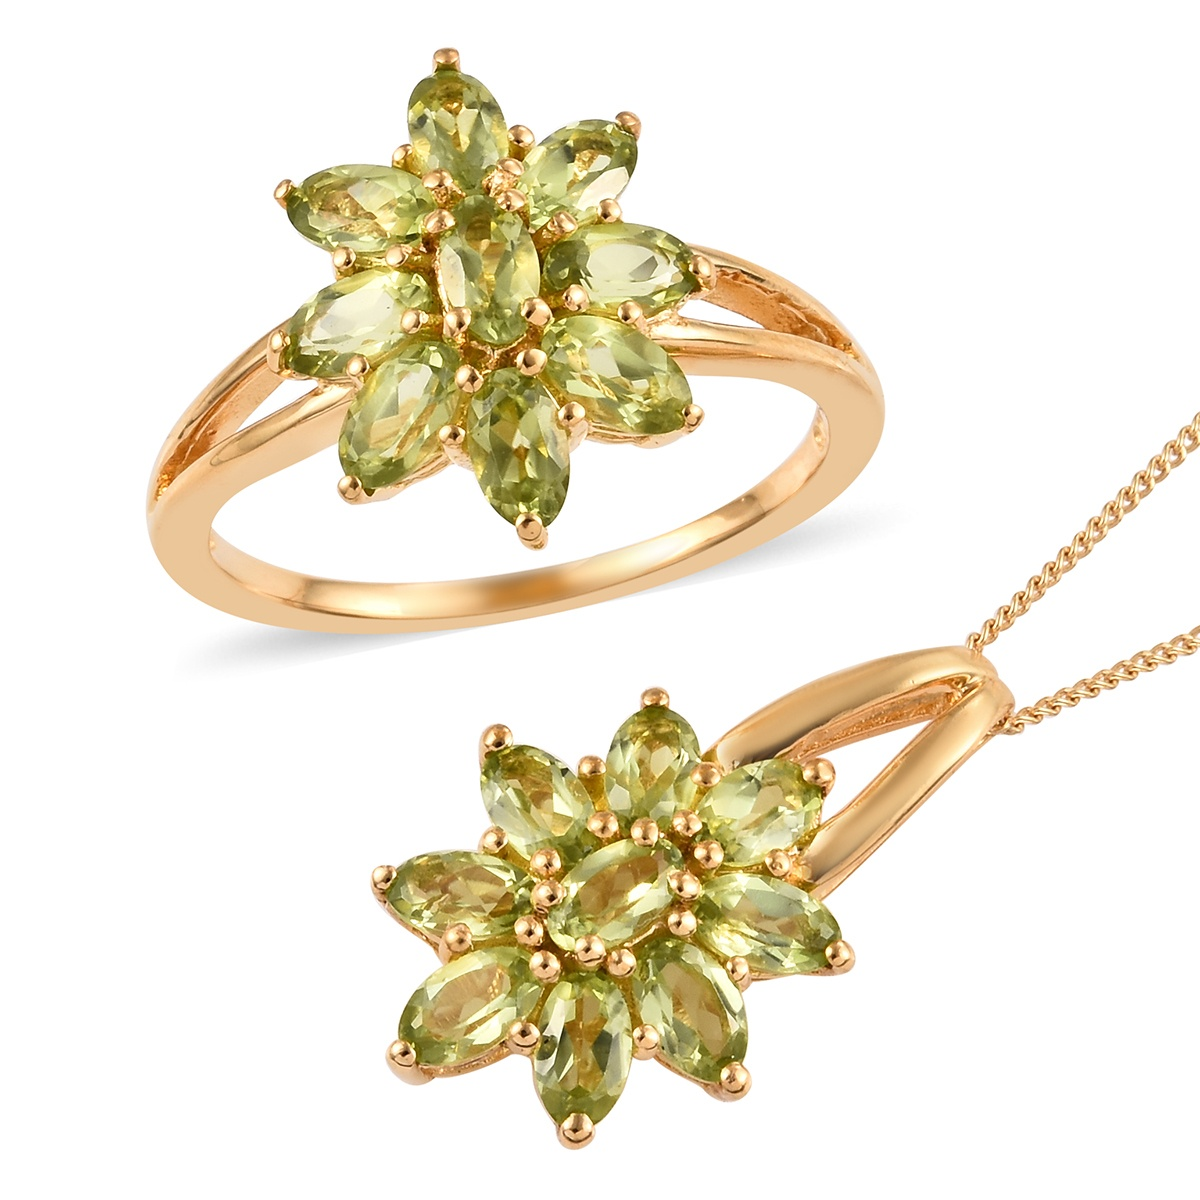 Hebei Peridot Ring (Size 10) and Pendant Necklace (20 in) in Vermeil YG Over Sterling Silver 4.20 ctw